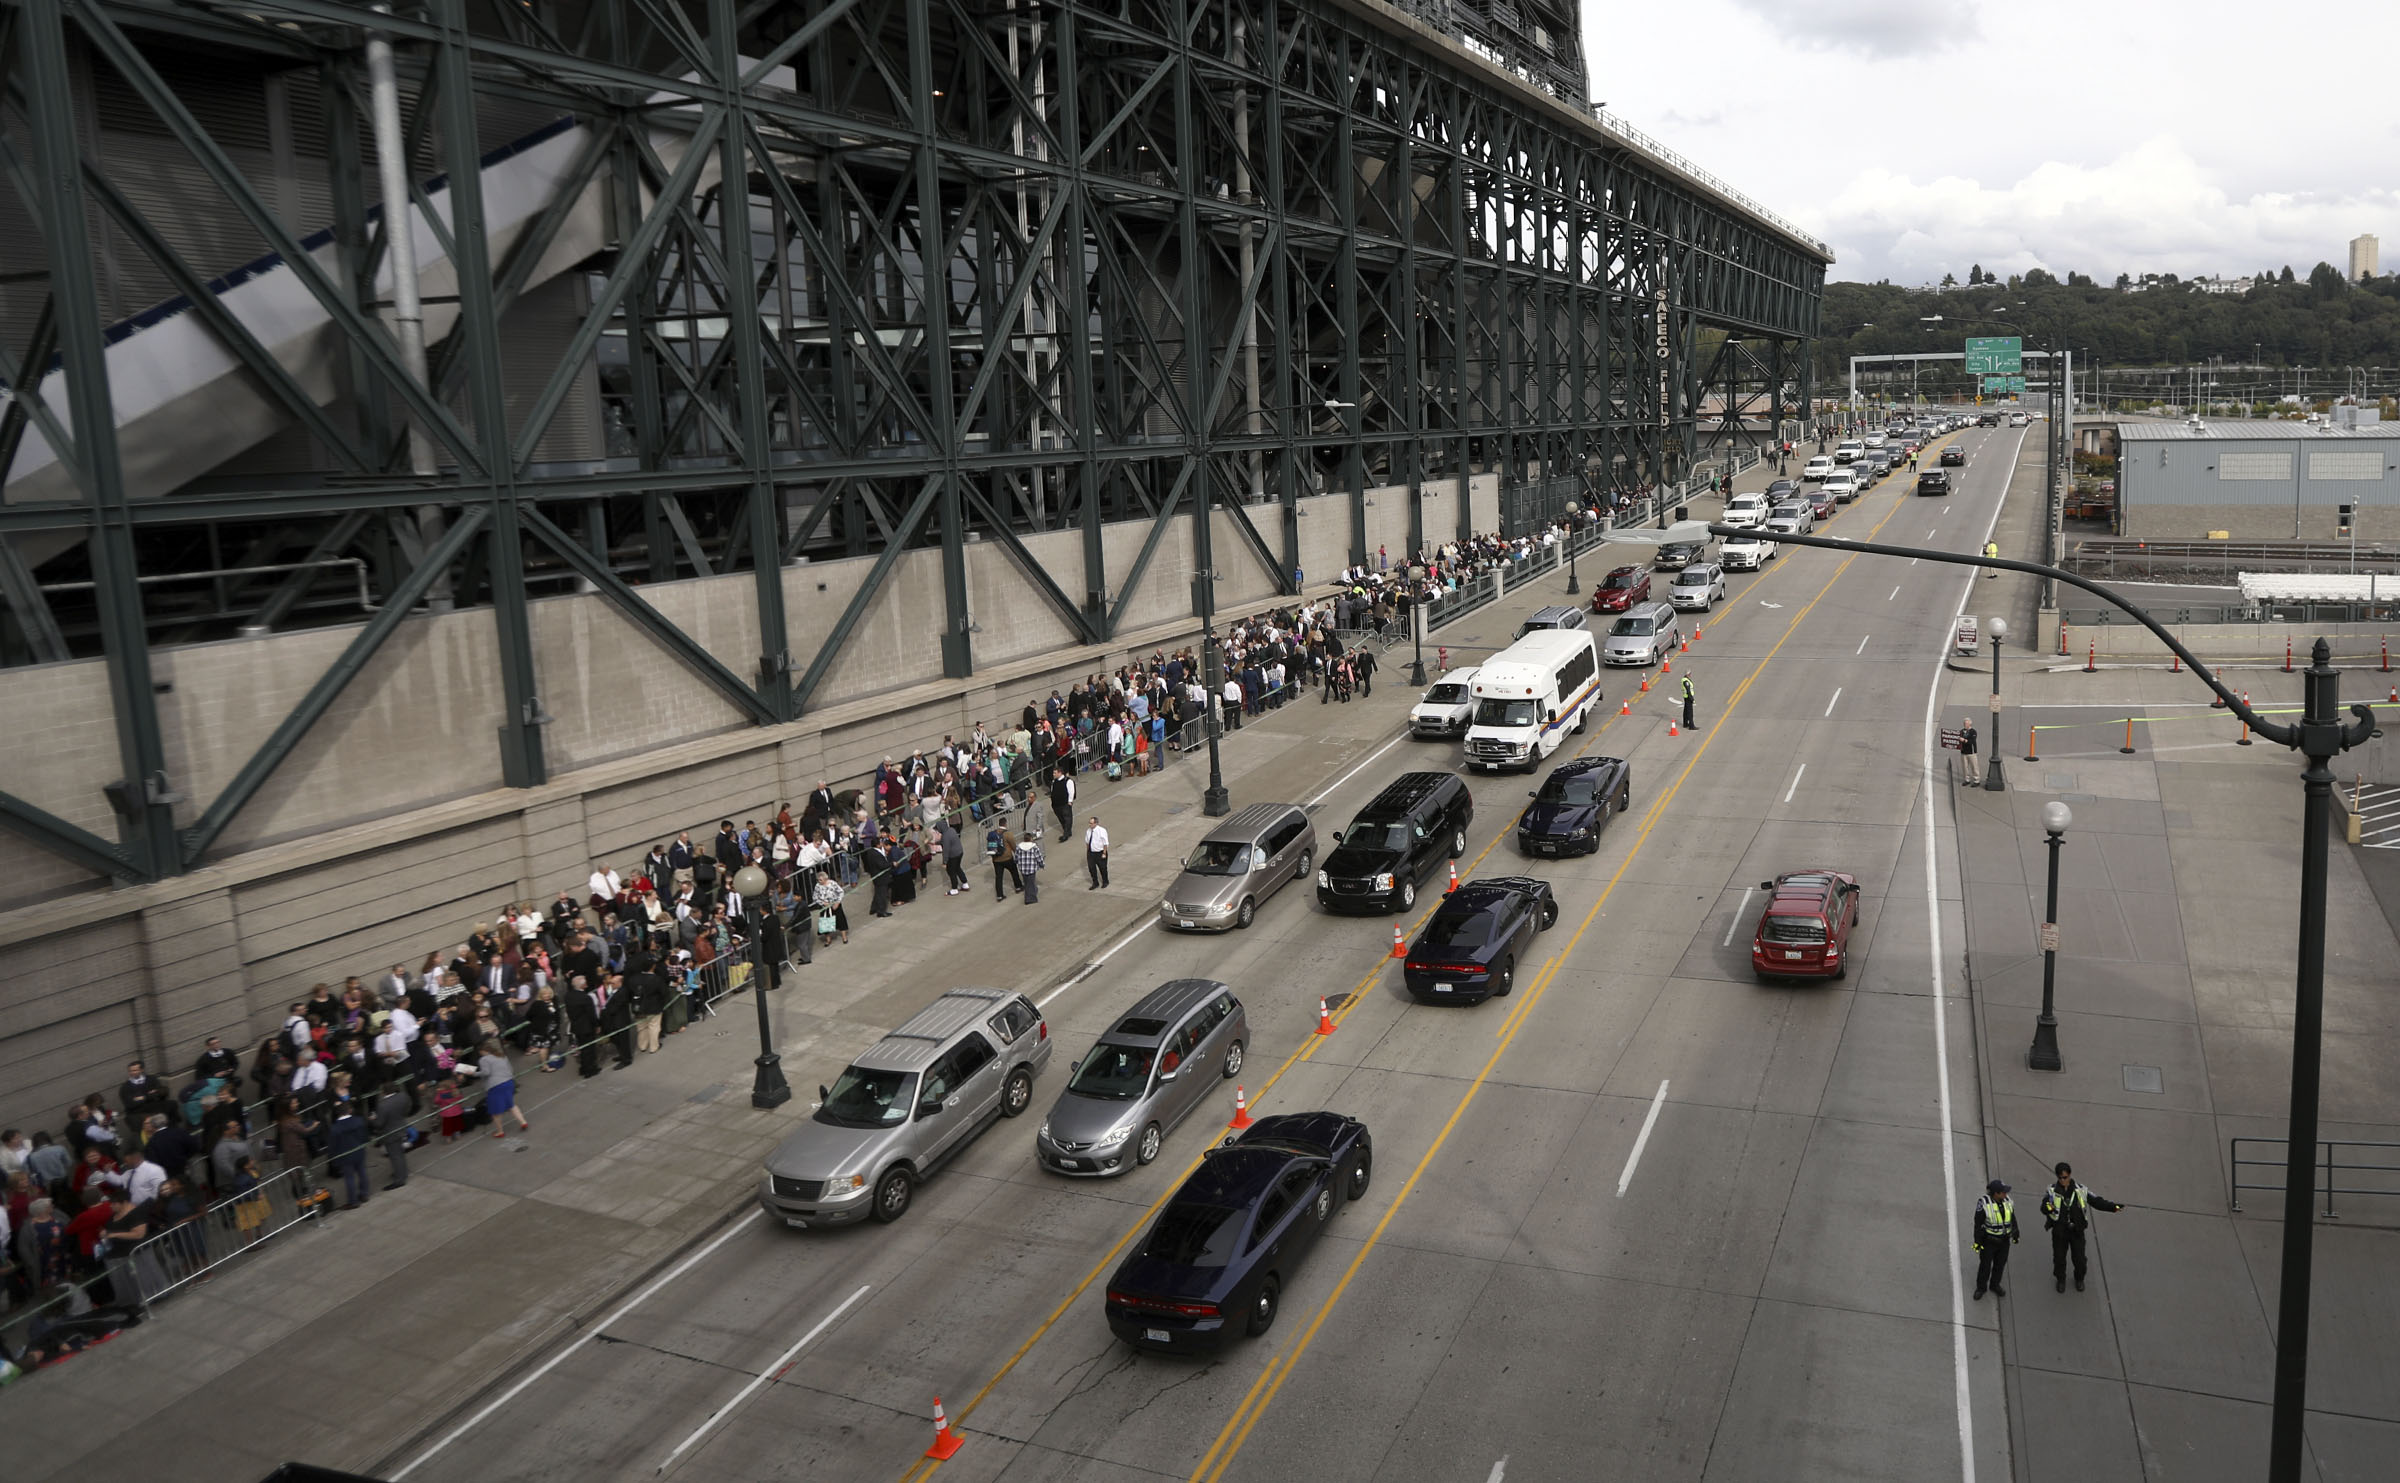 People line up around Safeco Field to hear President Russell M. Nelson of The Church of Jesus Christ of Latter-day Saints speak in Seattle, Wash., on Saturday, Sept. 15, 2018.